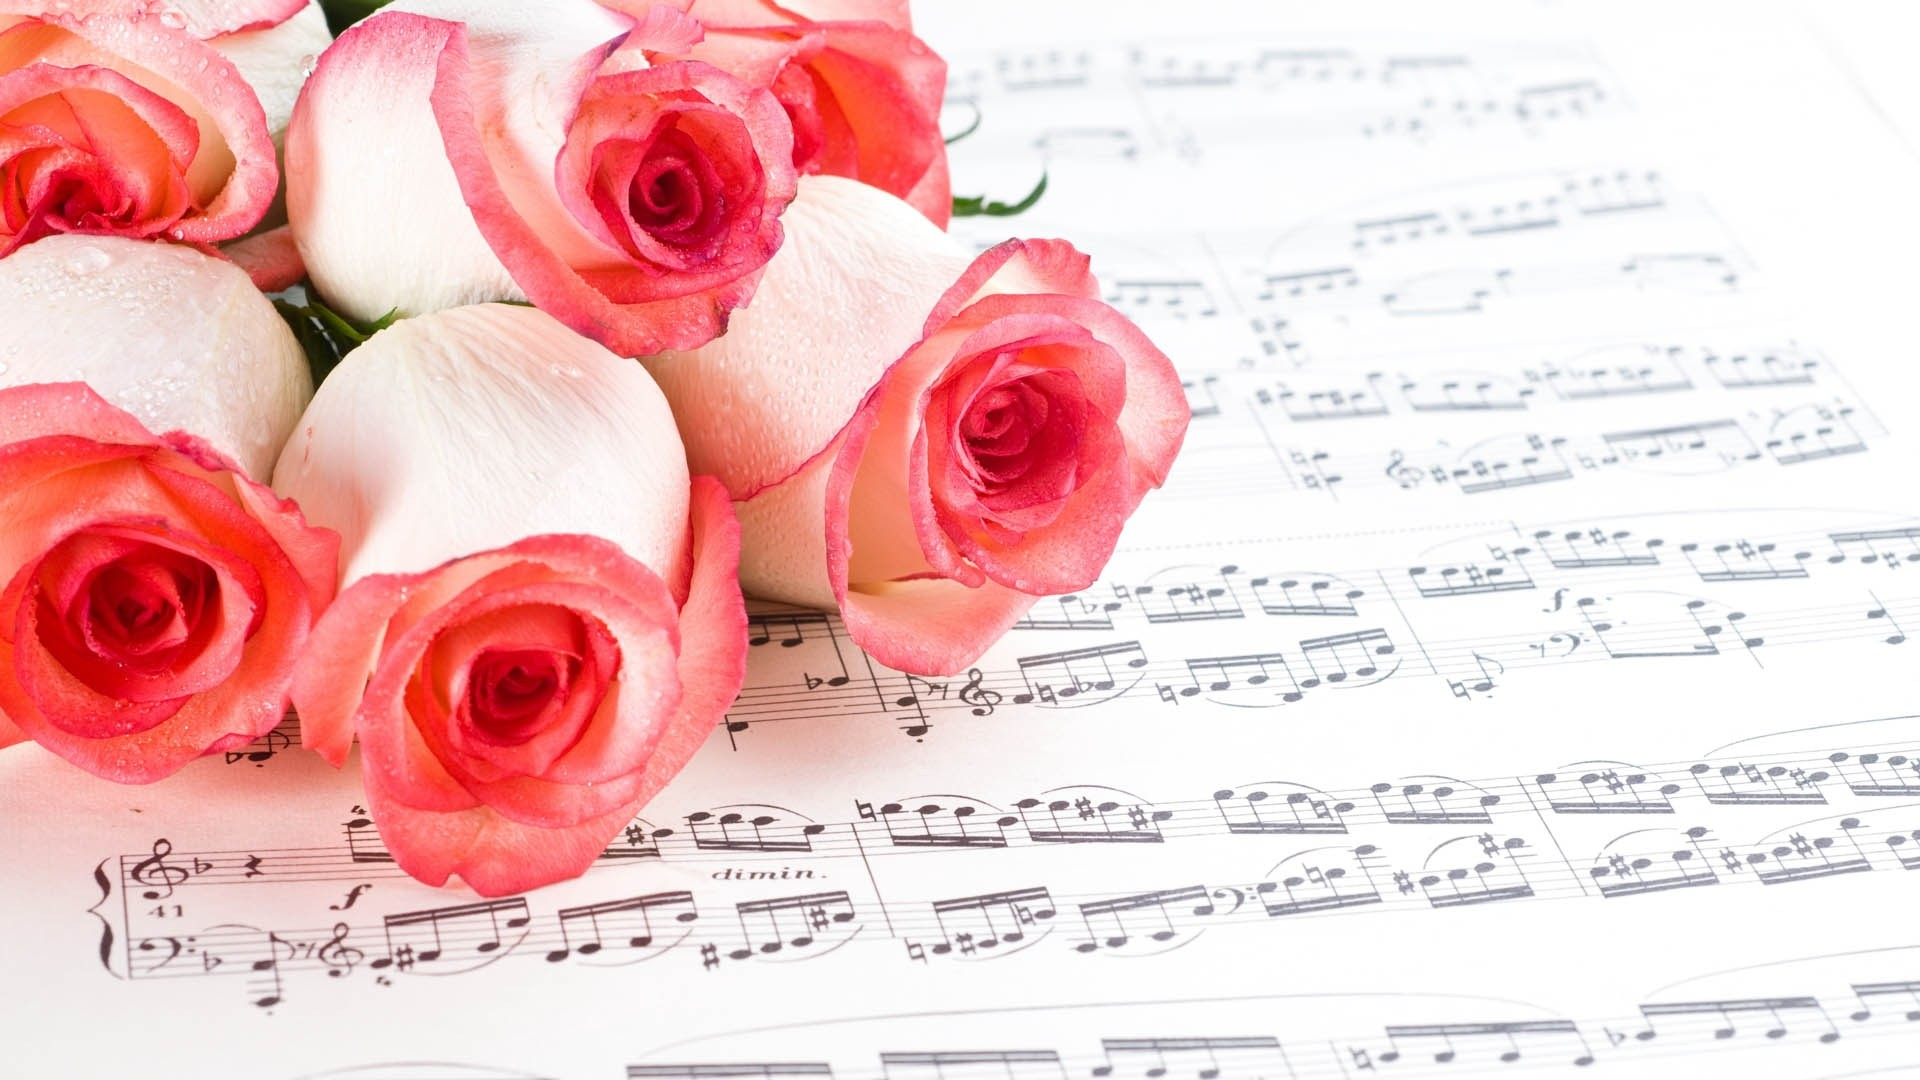 Free Photo Rose And Music Parchment Red Romance Non